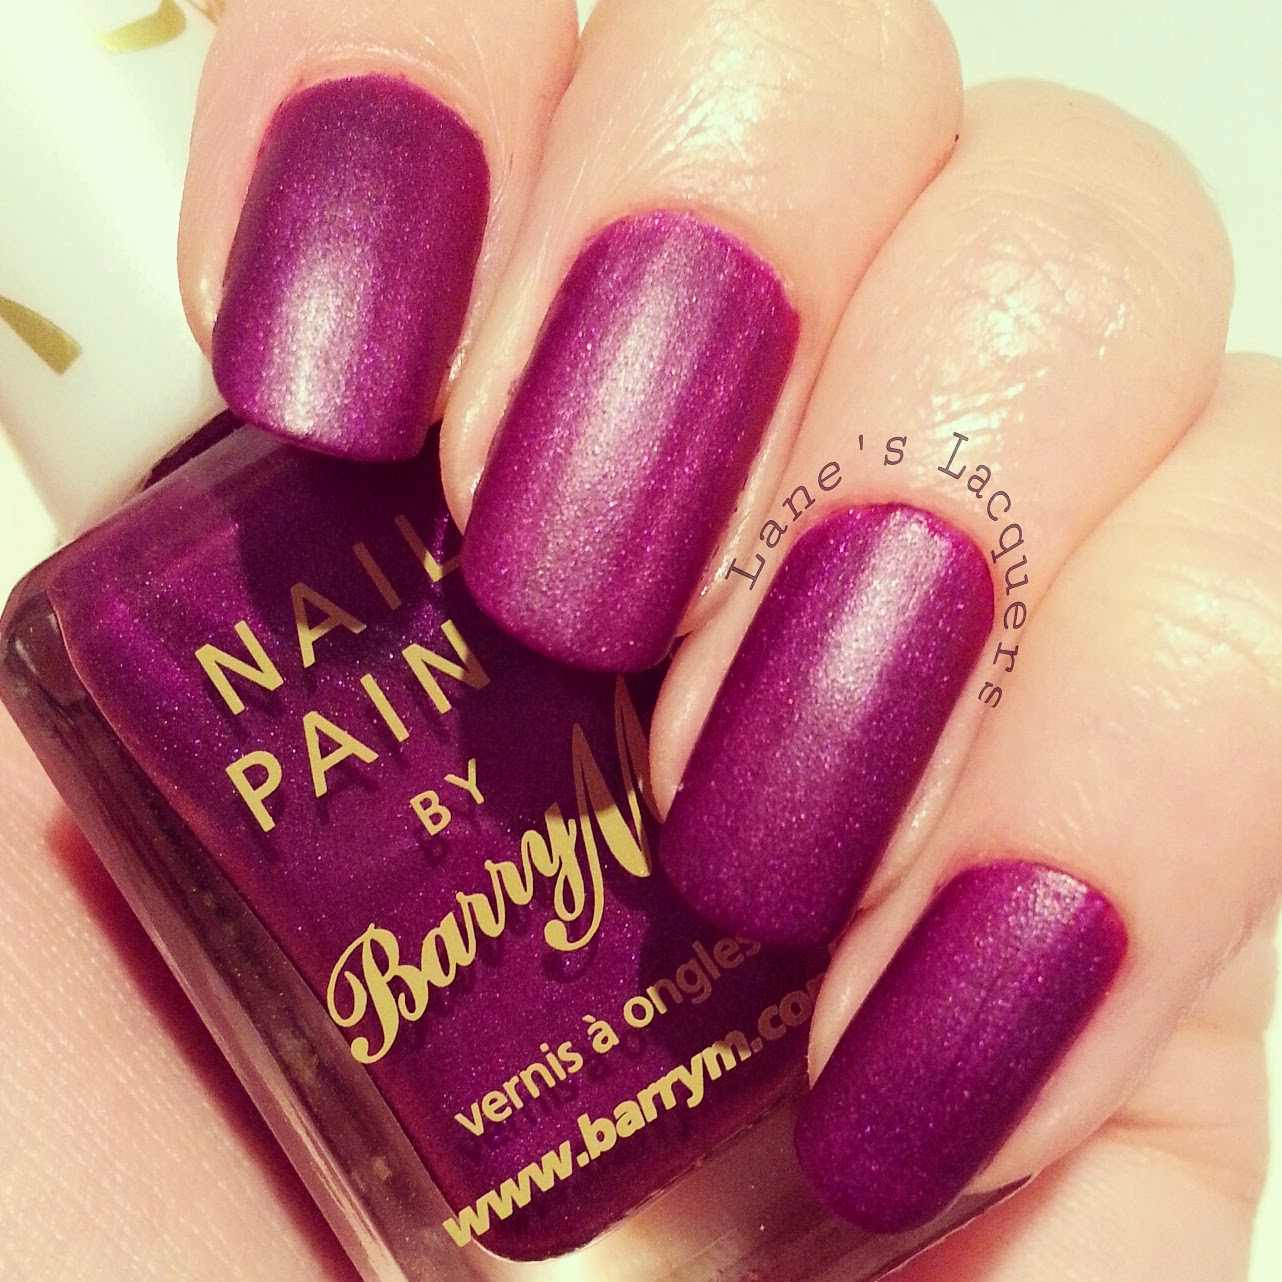 new-barry-m-silk-orchid-swatch-manicure (2)